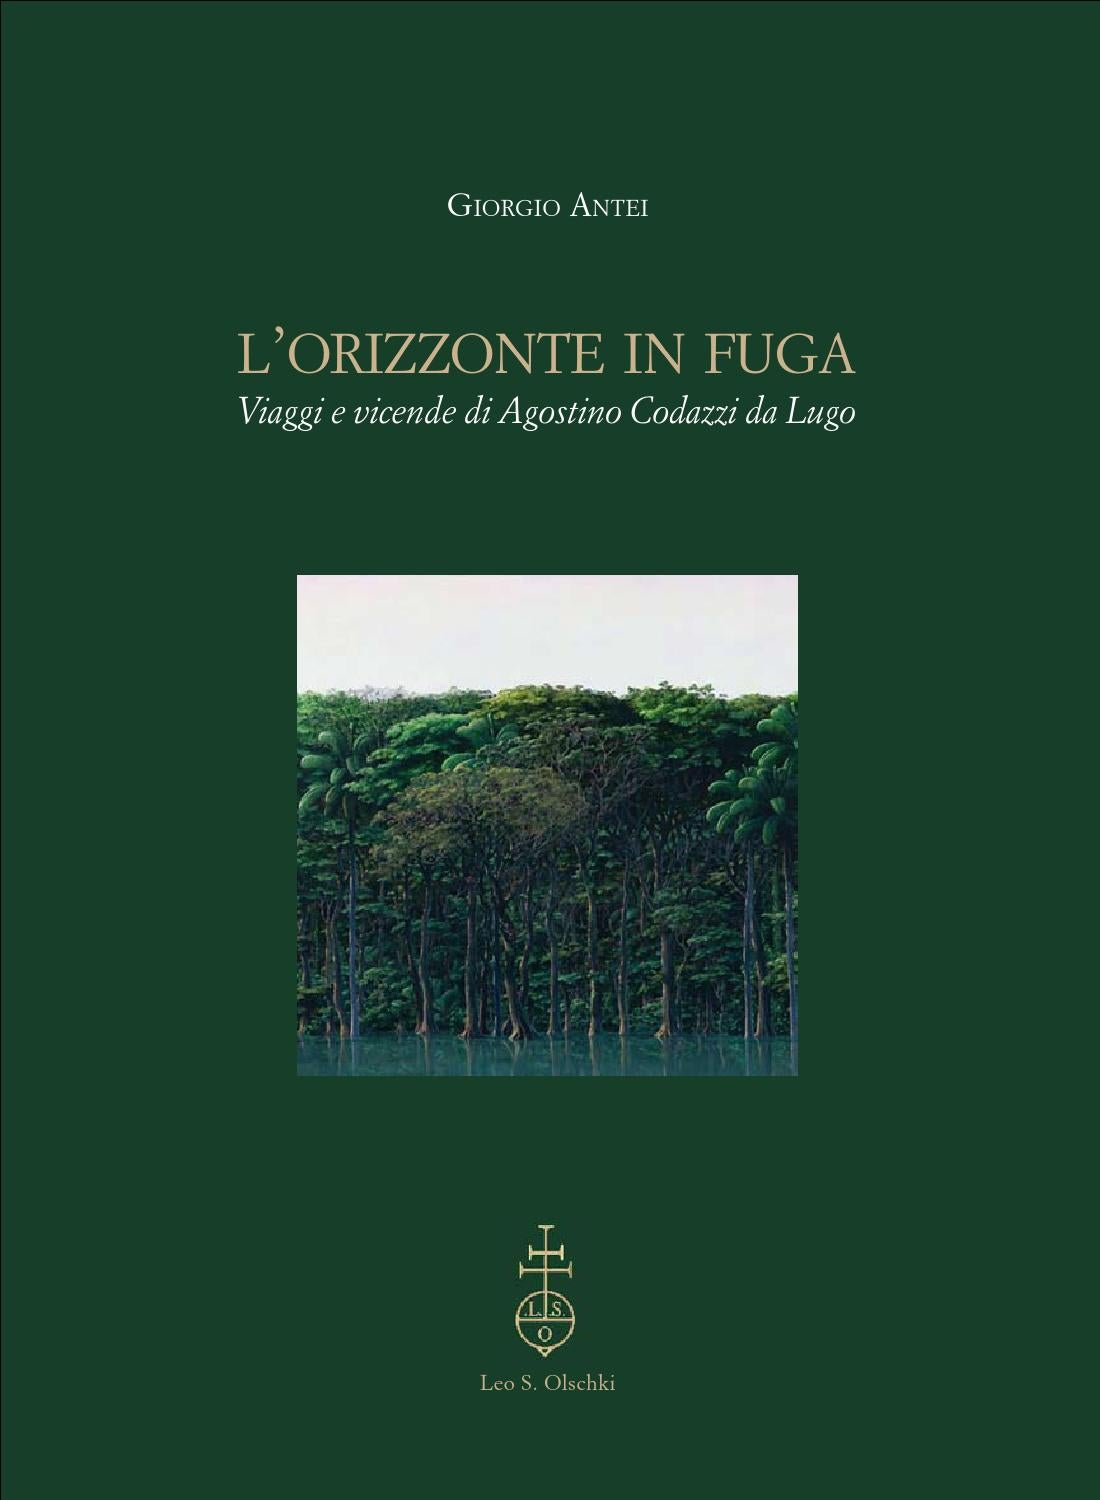 Orizzonte in fuga by almat - issuu bb80ef63cc45